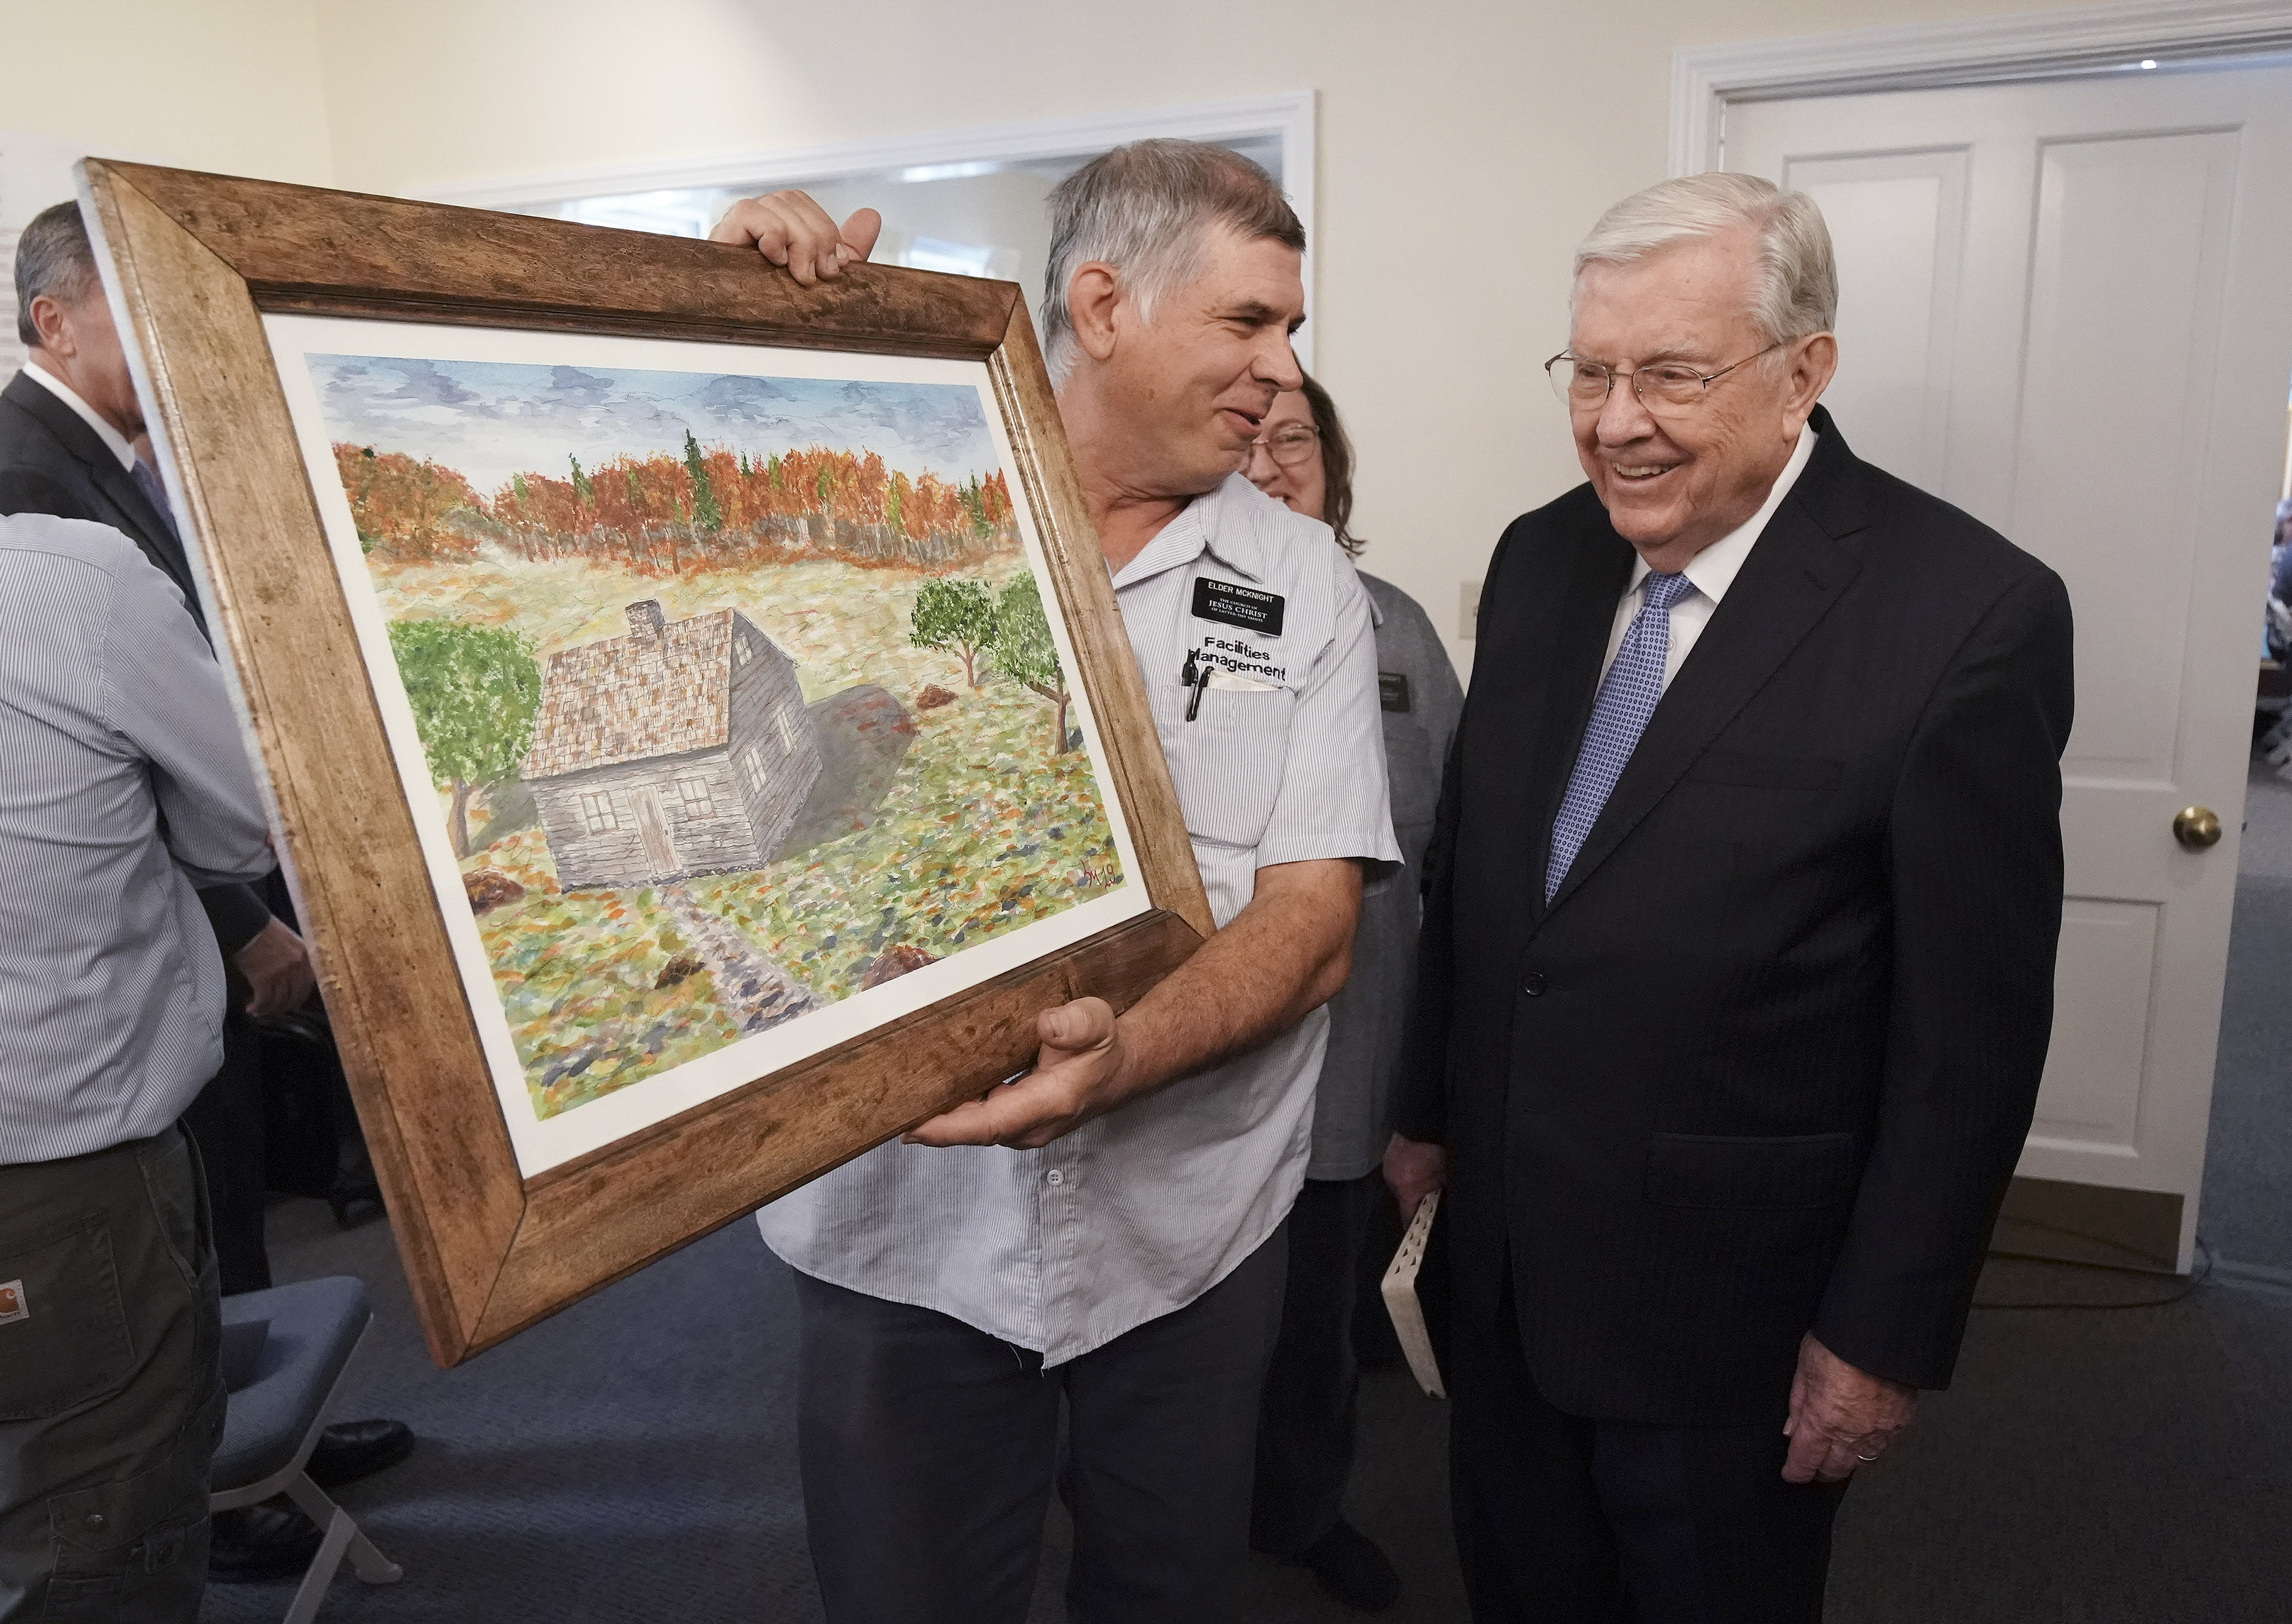 Elder Larry McKnight shows a painting he painted of the Joesph Smith Sr. cabin to President M. Russell Ballard, acting president of the Quorum of the Twelve Apostles of The Church of Jesus Christ of Latter-day Saints, prior to a missionary meeting at the Joseph Smith Birthplace Memorial in Sharon, Vt., on Saturday, Oct. 19, 2019.